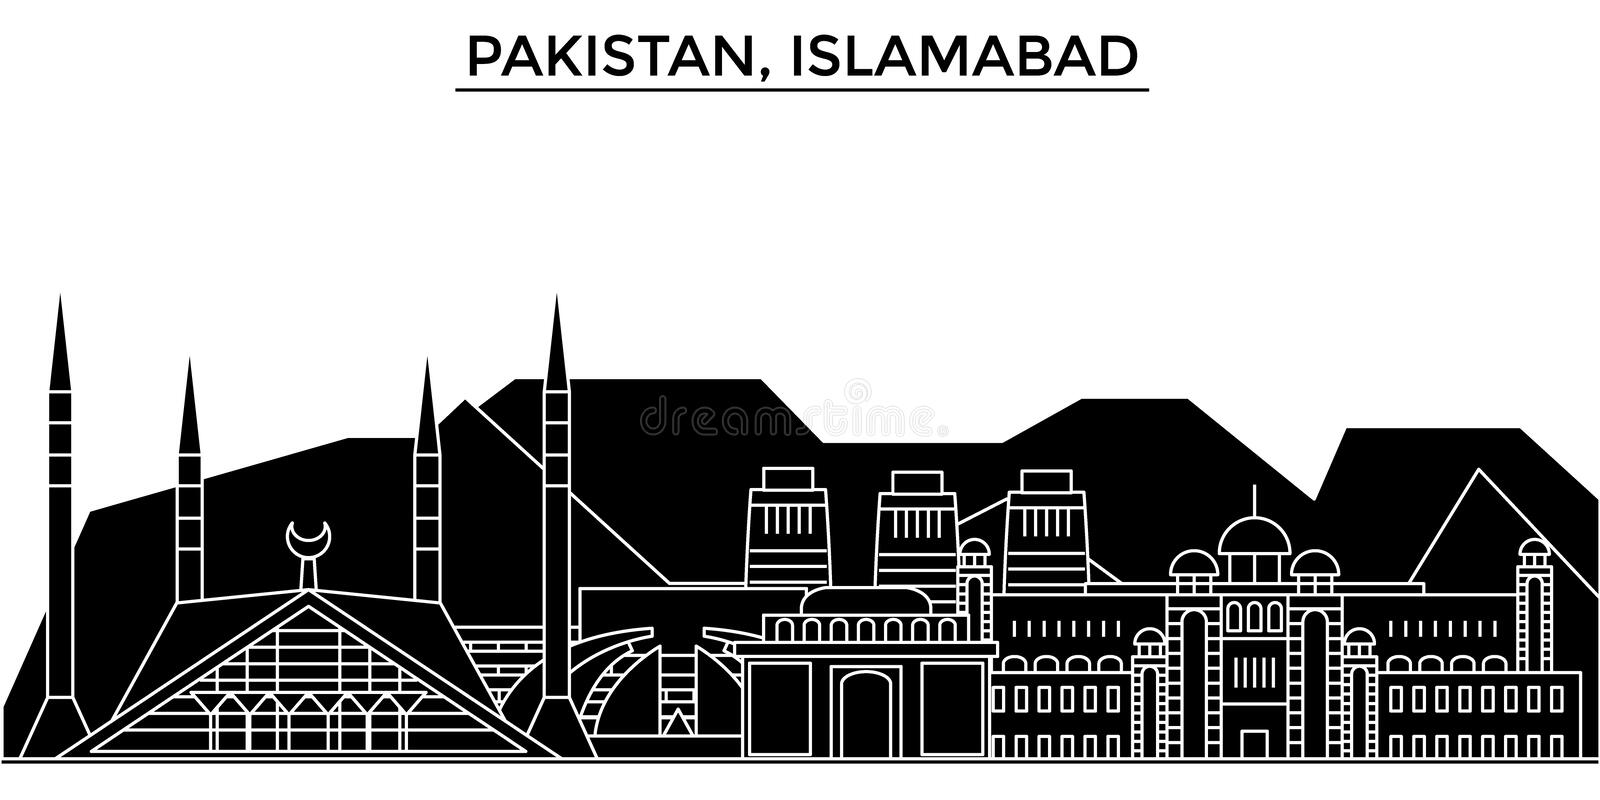 Pakistan, Islamabad architecture vector city skyline, travel cityscape with landmarks, buildings, isolated sights on. Pakistan, Islamabad architecture vector royalty free illustration